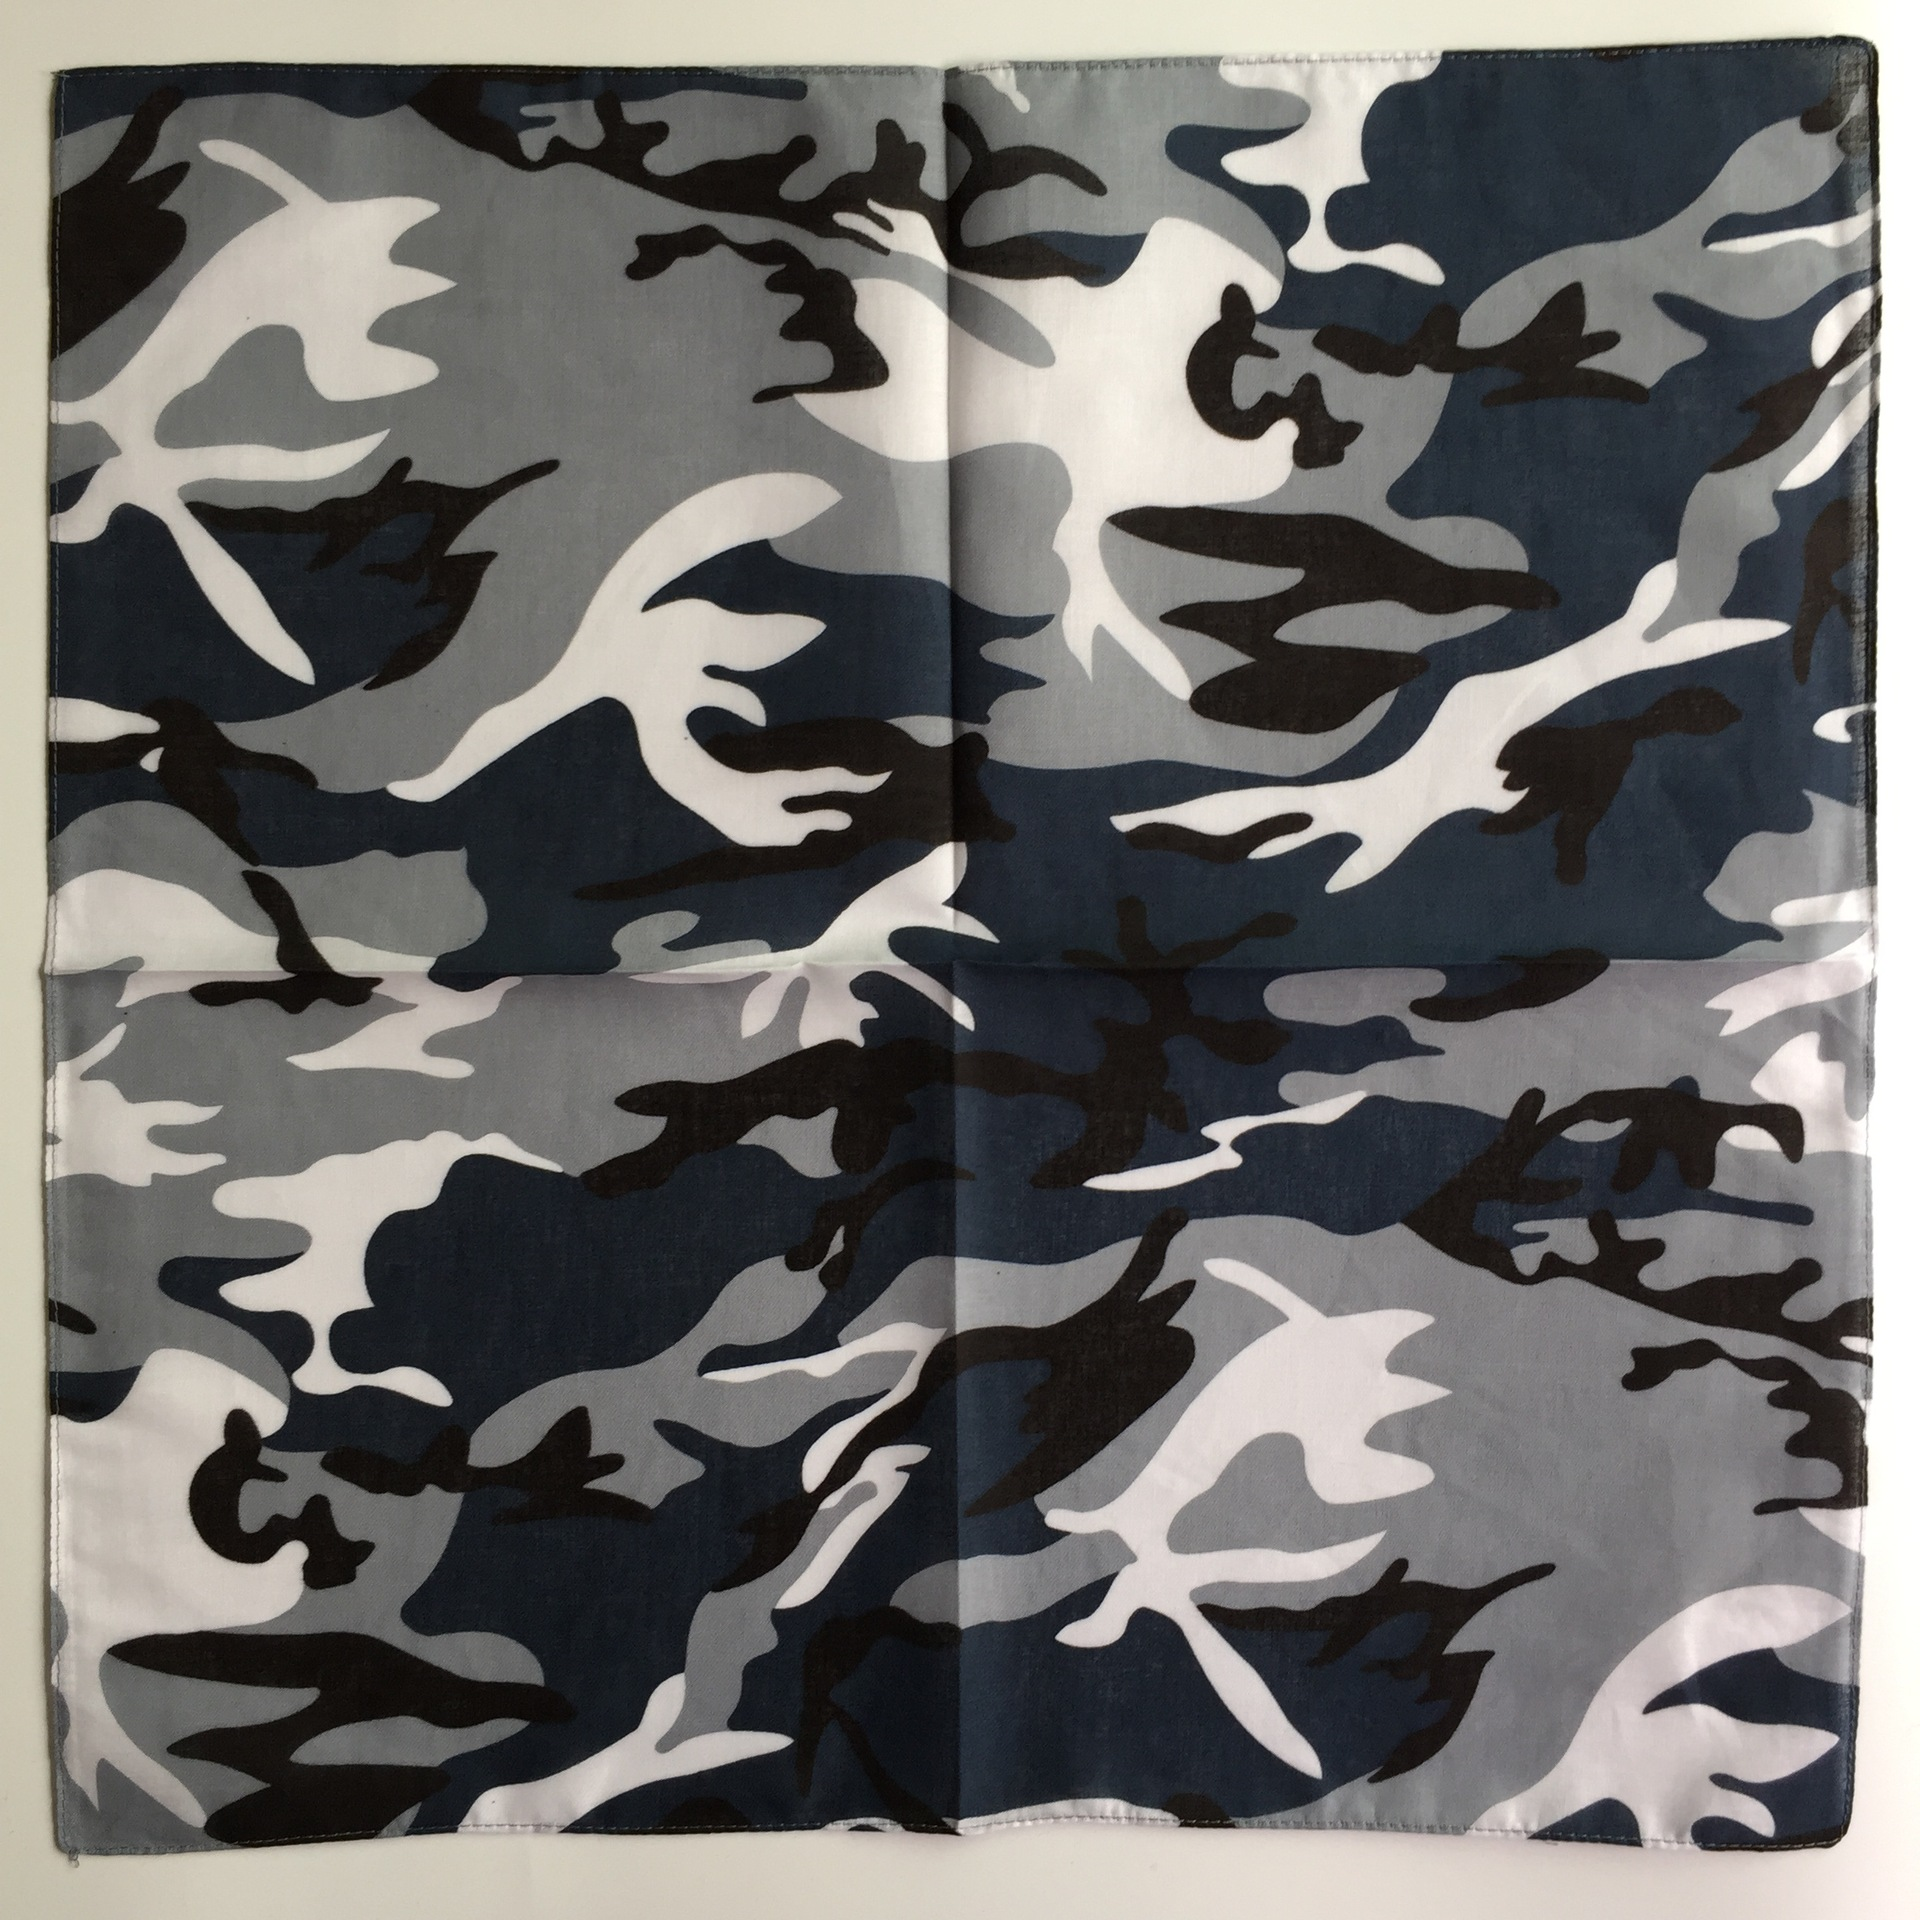 36pcsYKP Non Fading Camo Printing Cotton Bandanas Scarf Cheap Men Camouflage Face Kerchiefs Sport Bandana Neck Scarves Wholesale